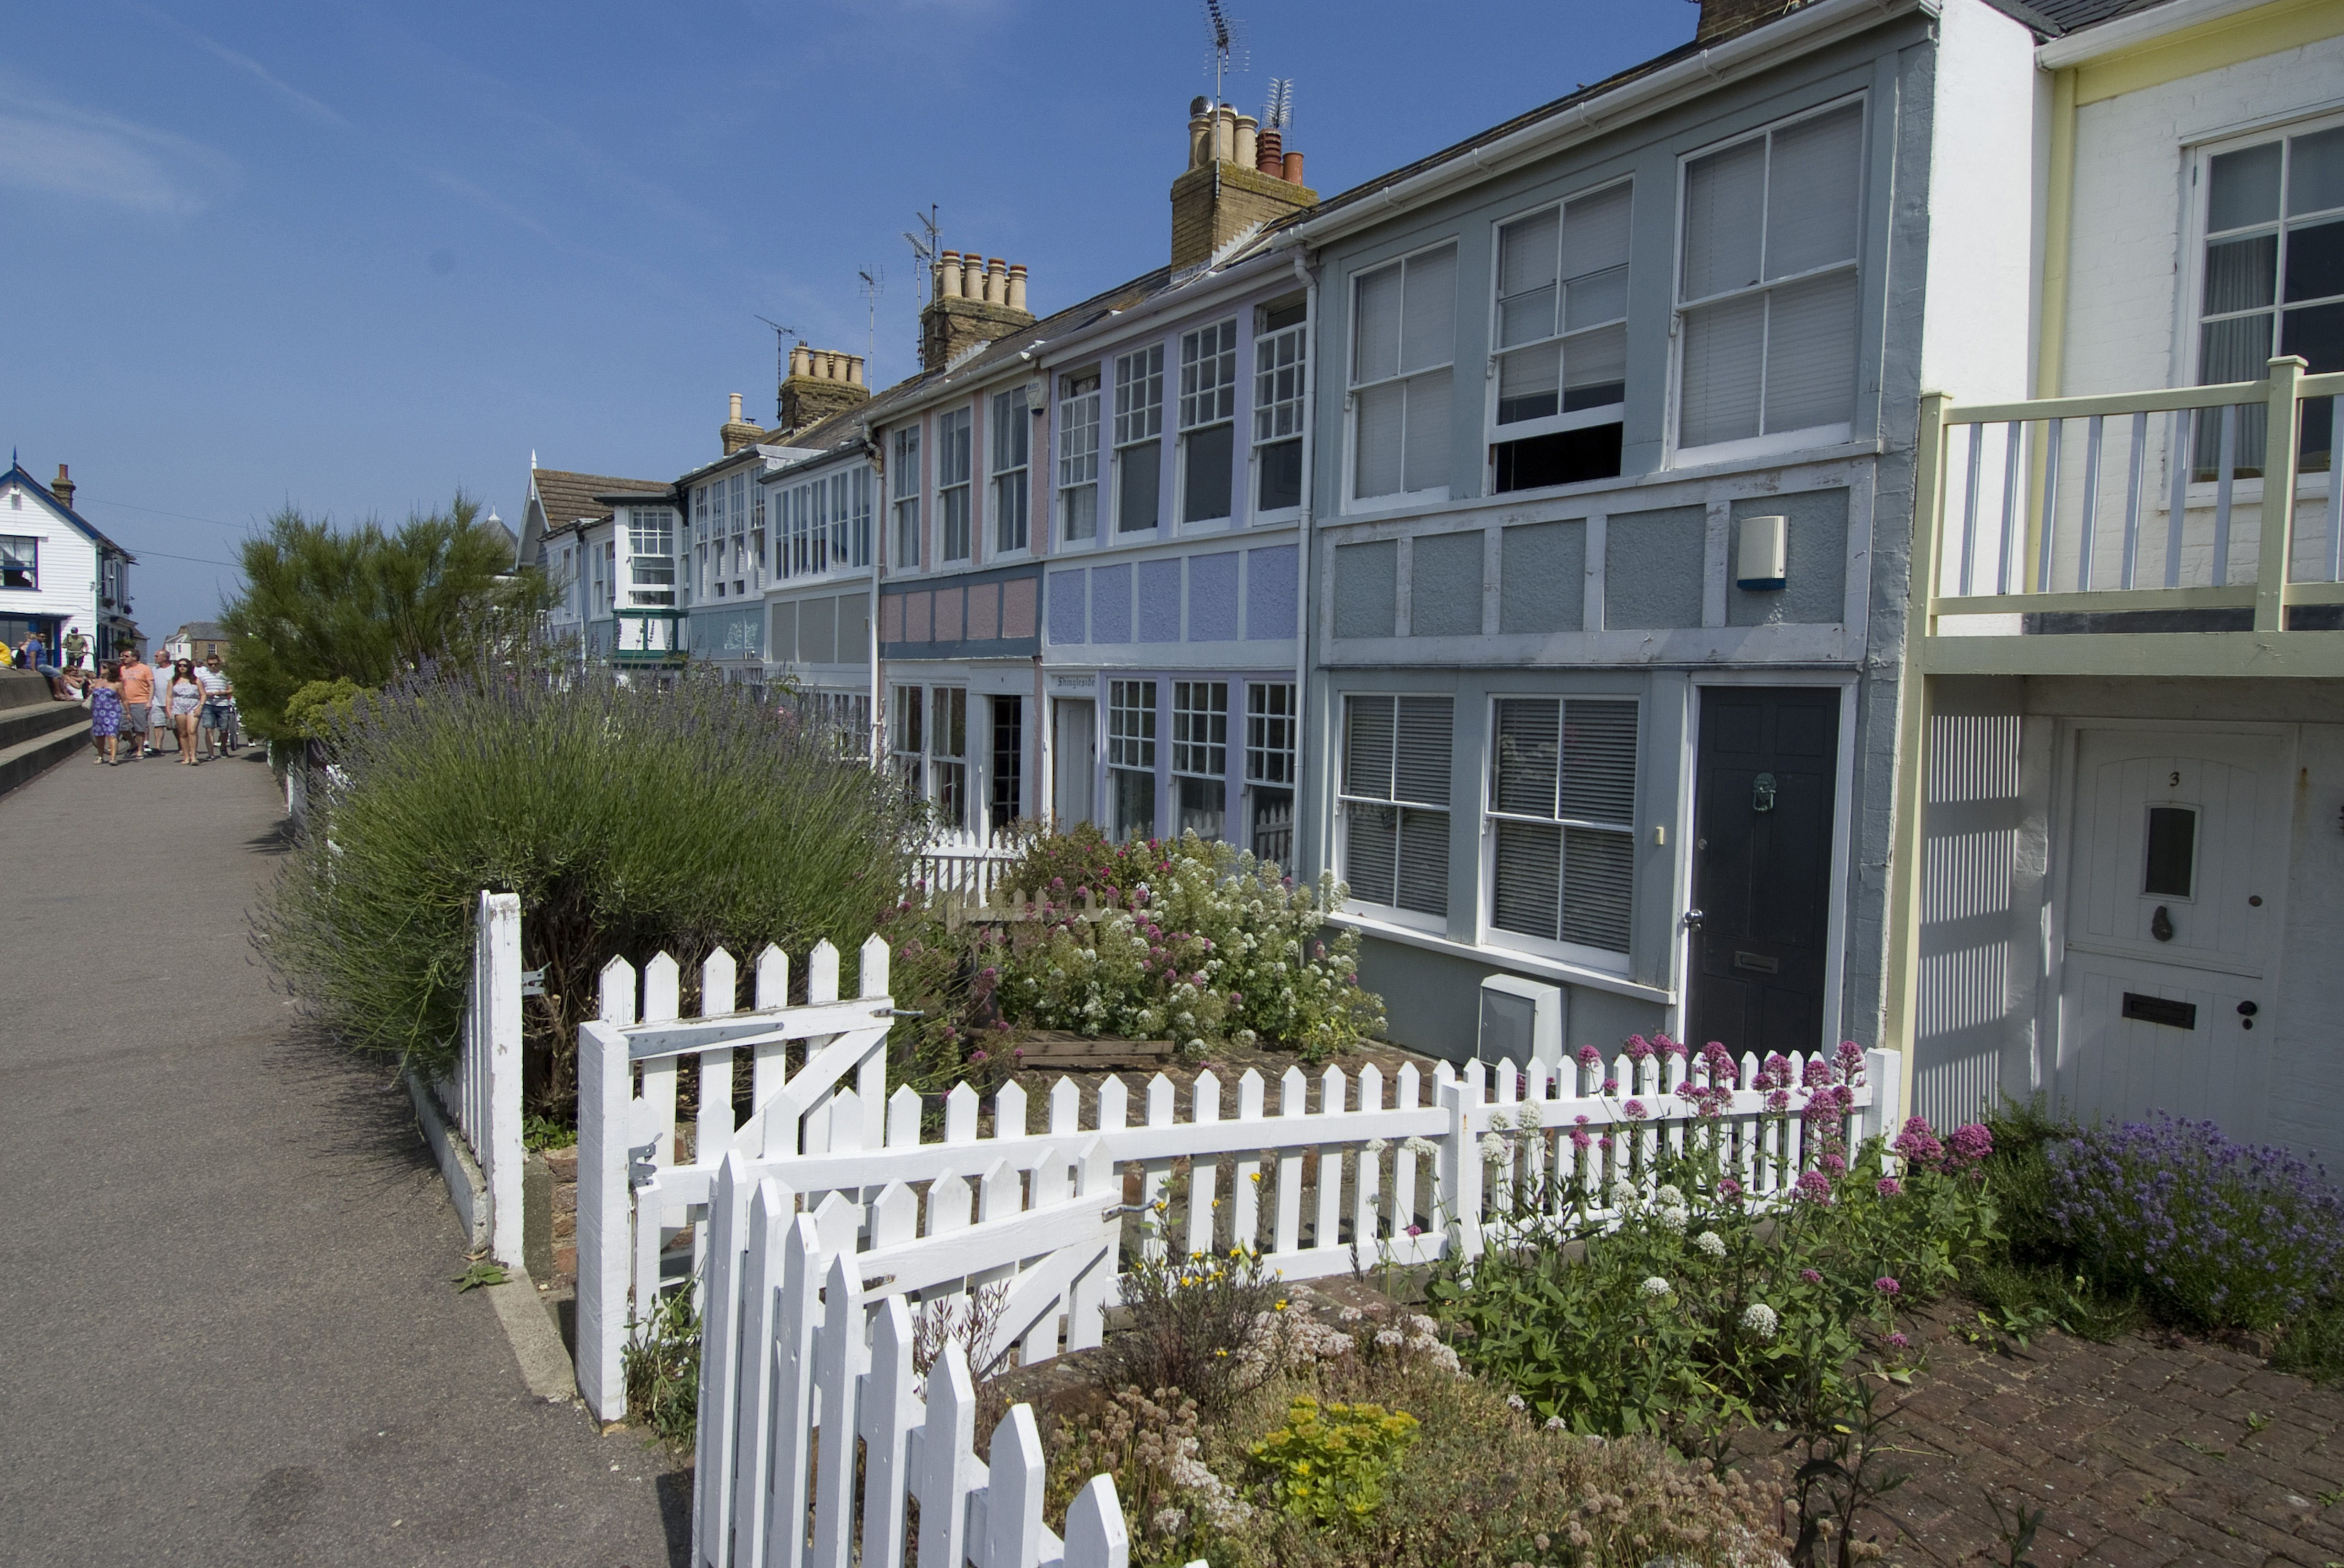 White picket fences in front of holiday waterside houses, Whitstable, Kent, England